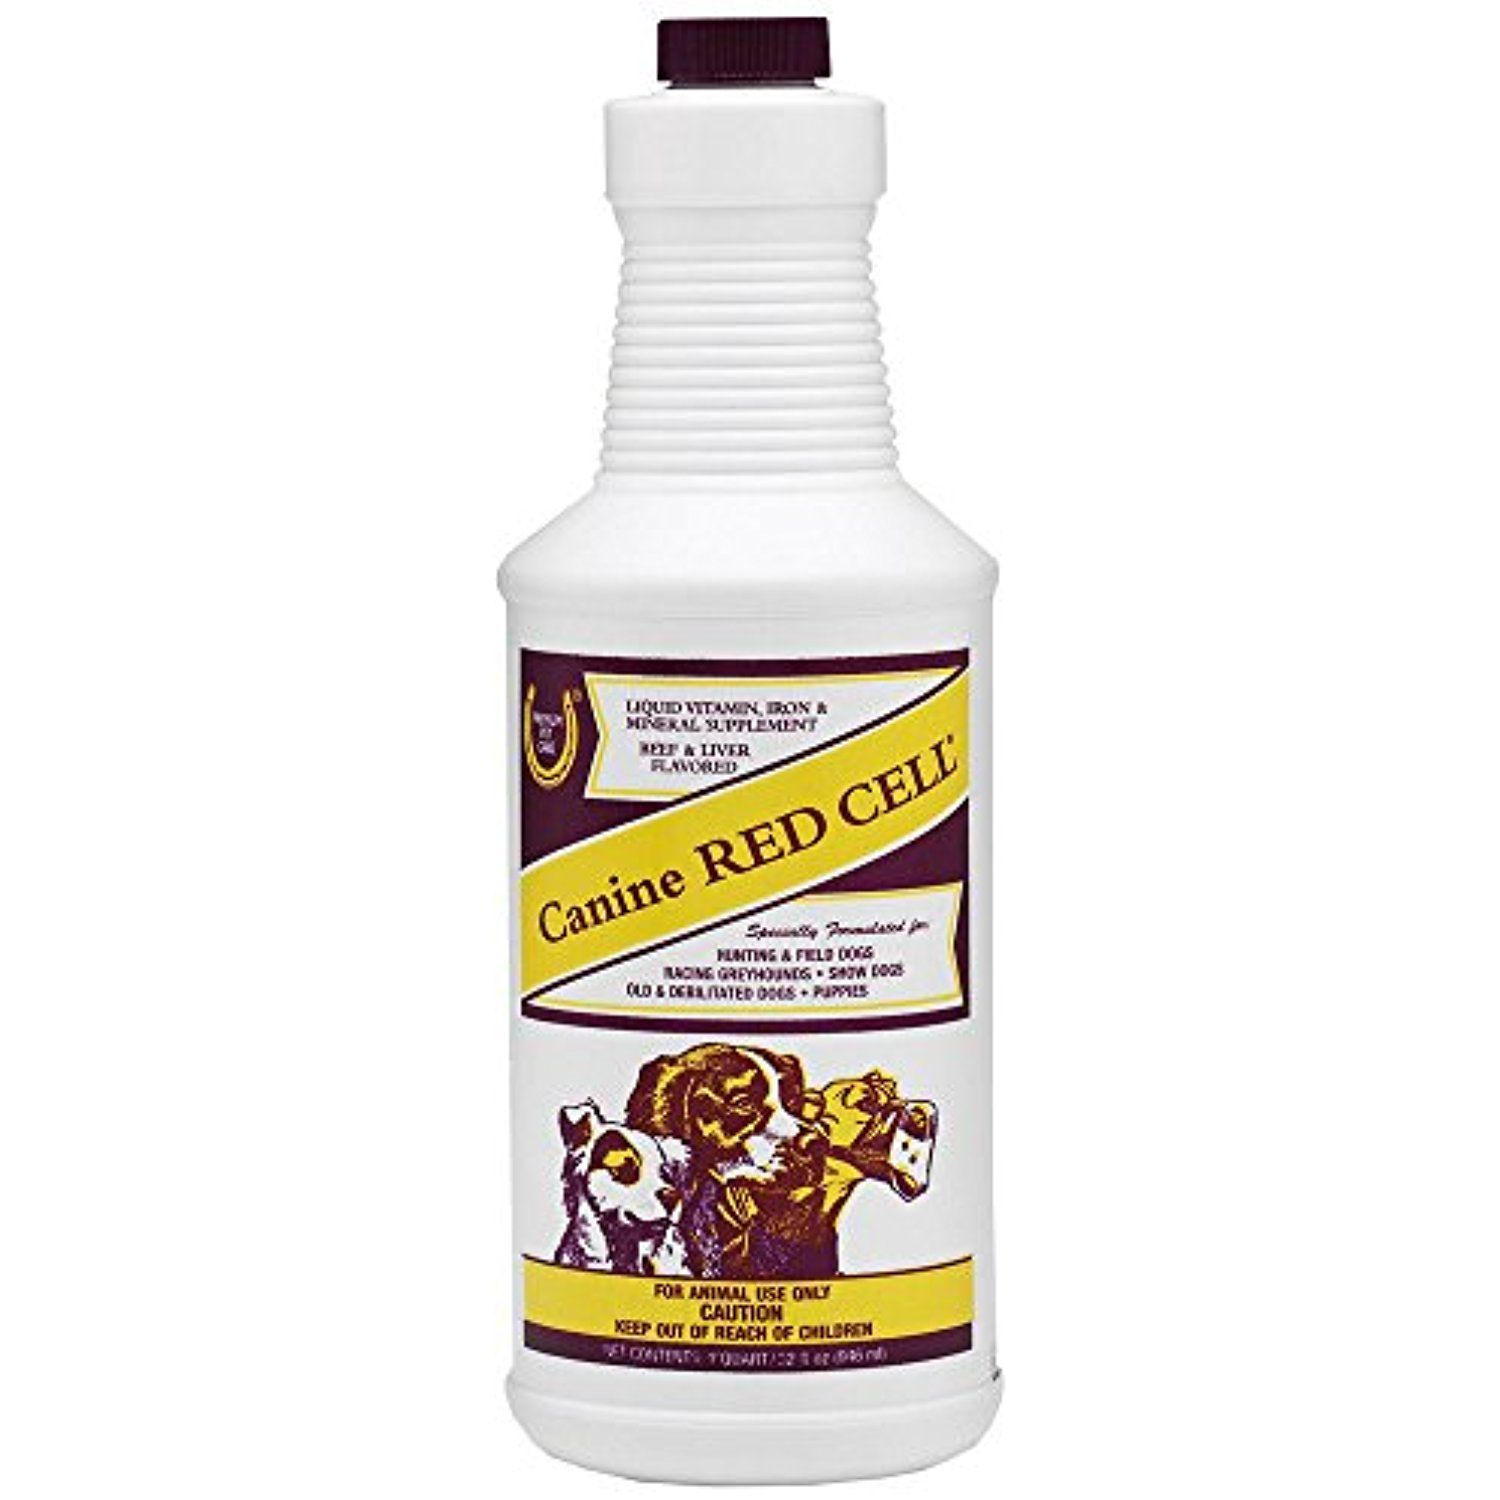 Canine Dog Red Cell Nutritional Supplement, Vitamins and